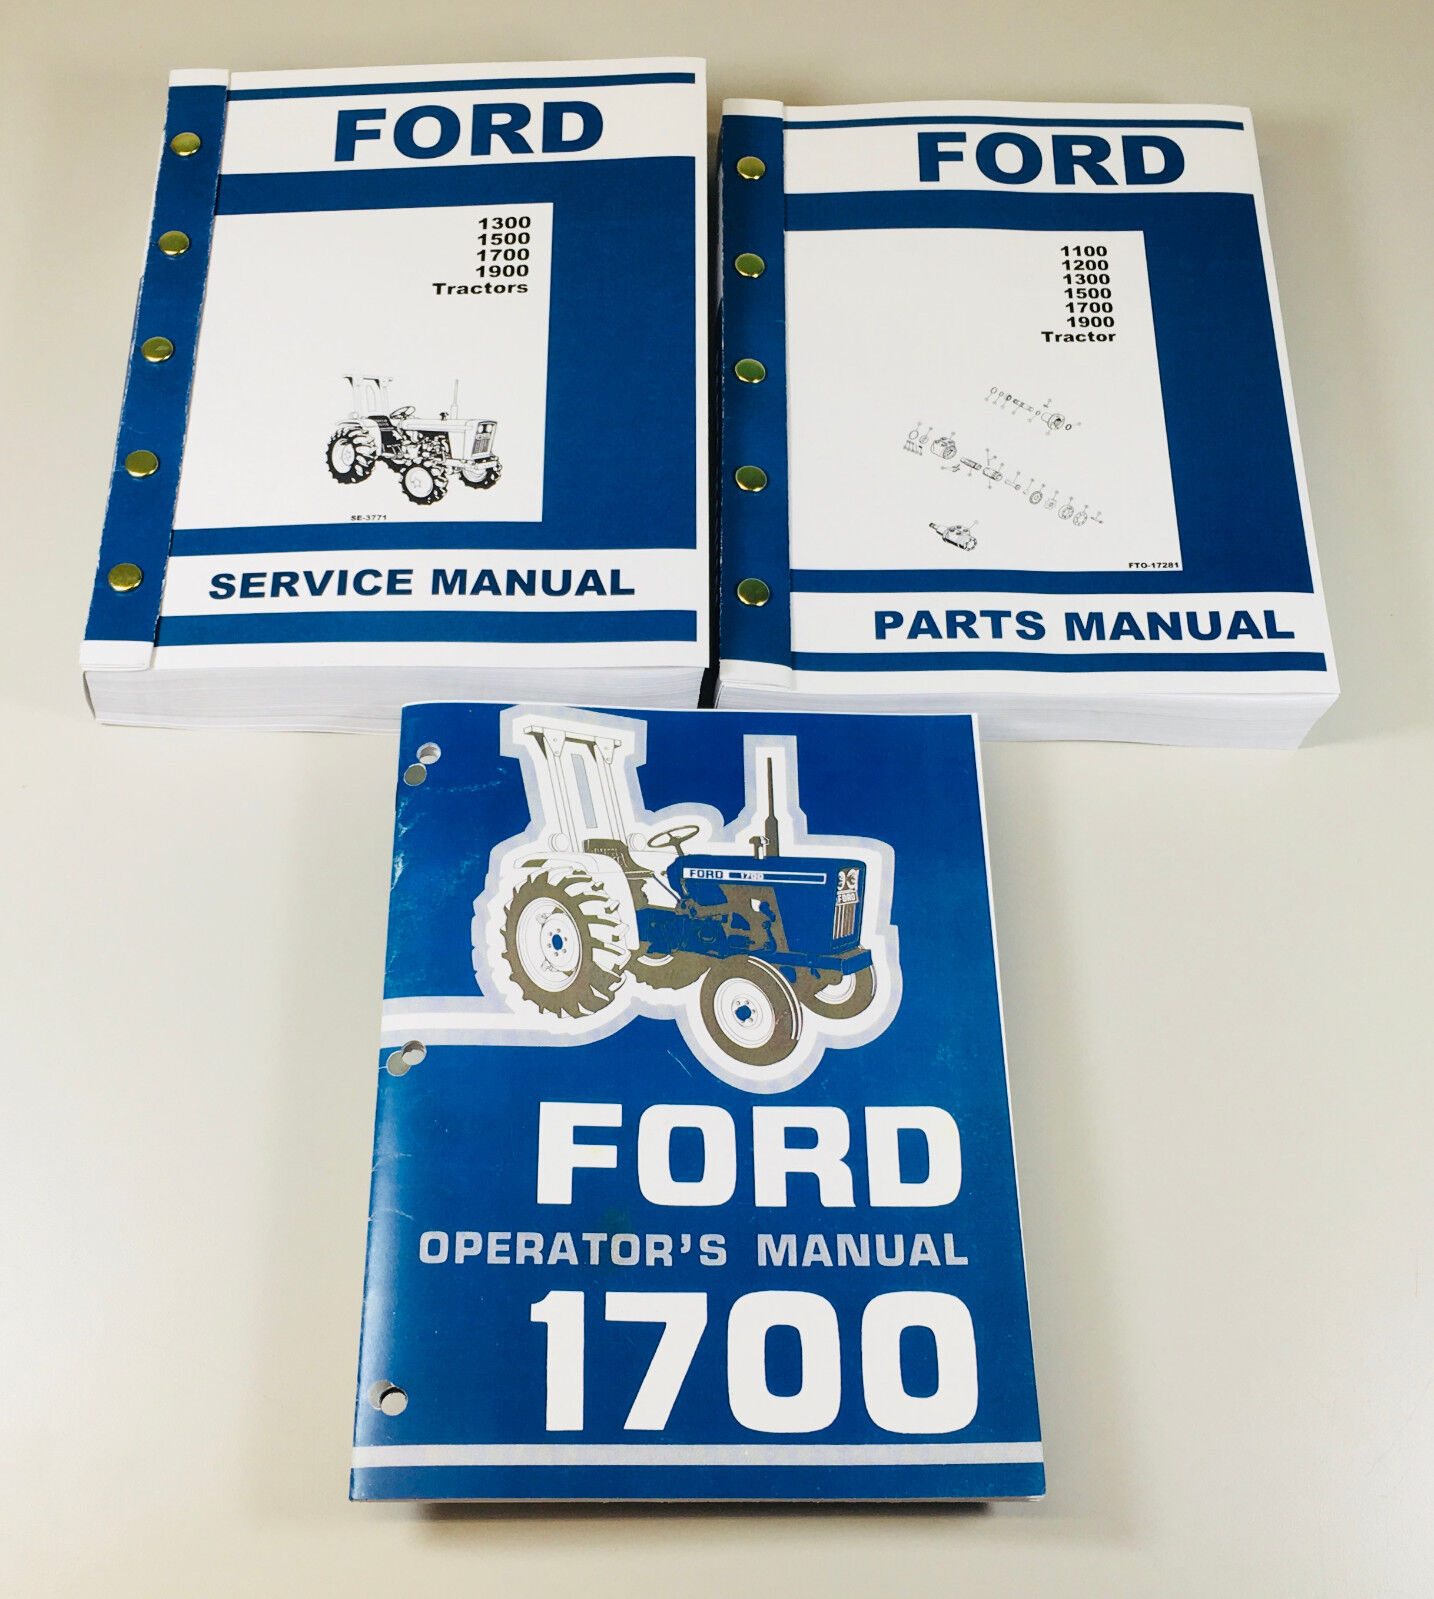 ... Ford 1700 Tractors. Complete Service Repair/Overhaul/Parts and  Operations